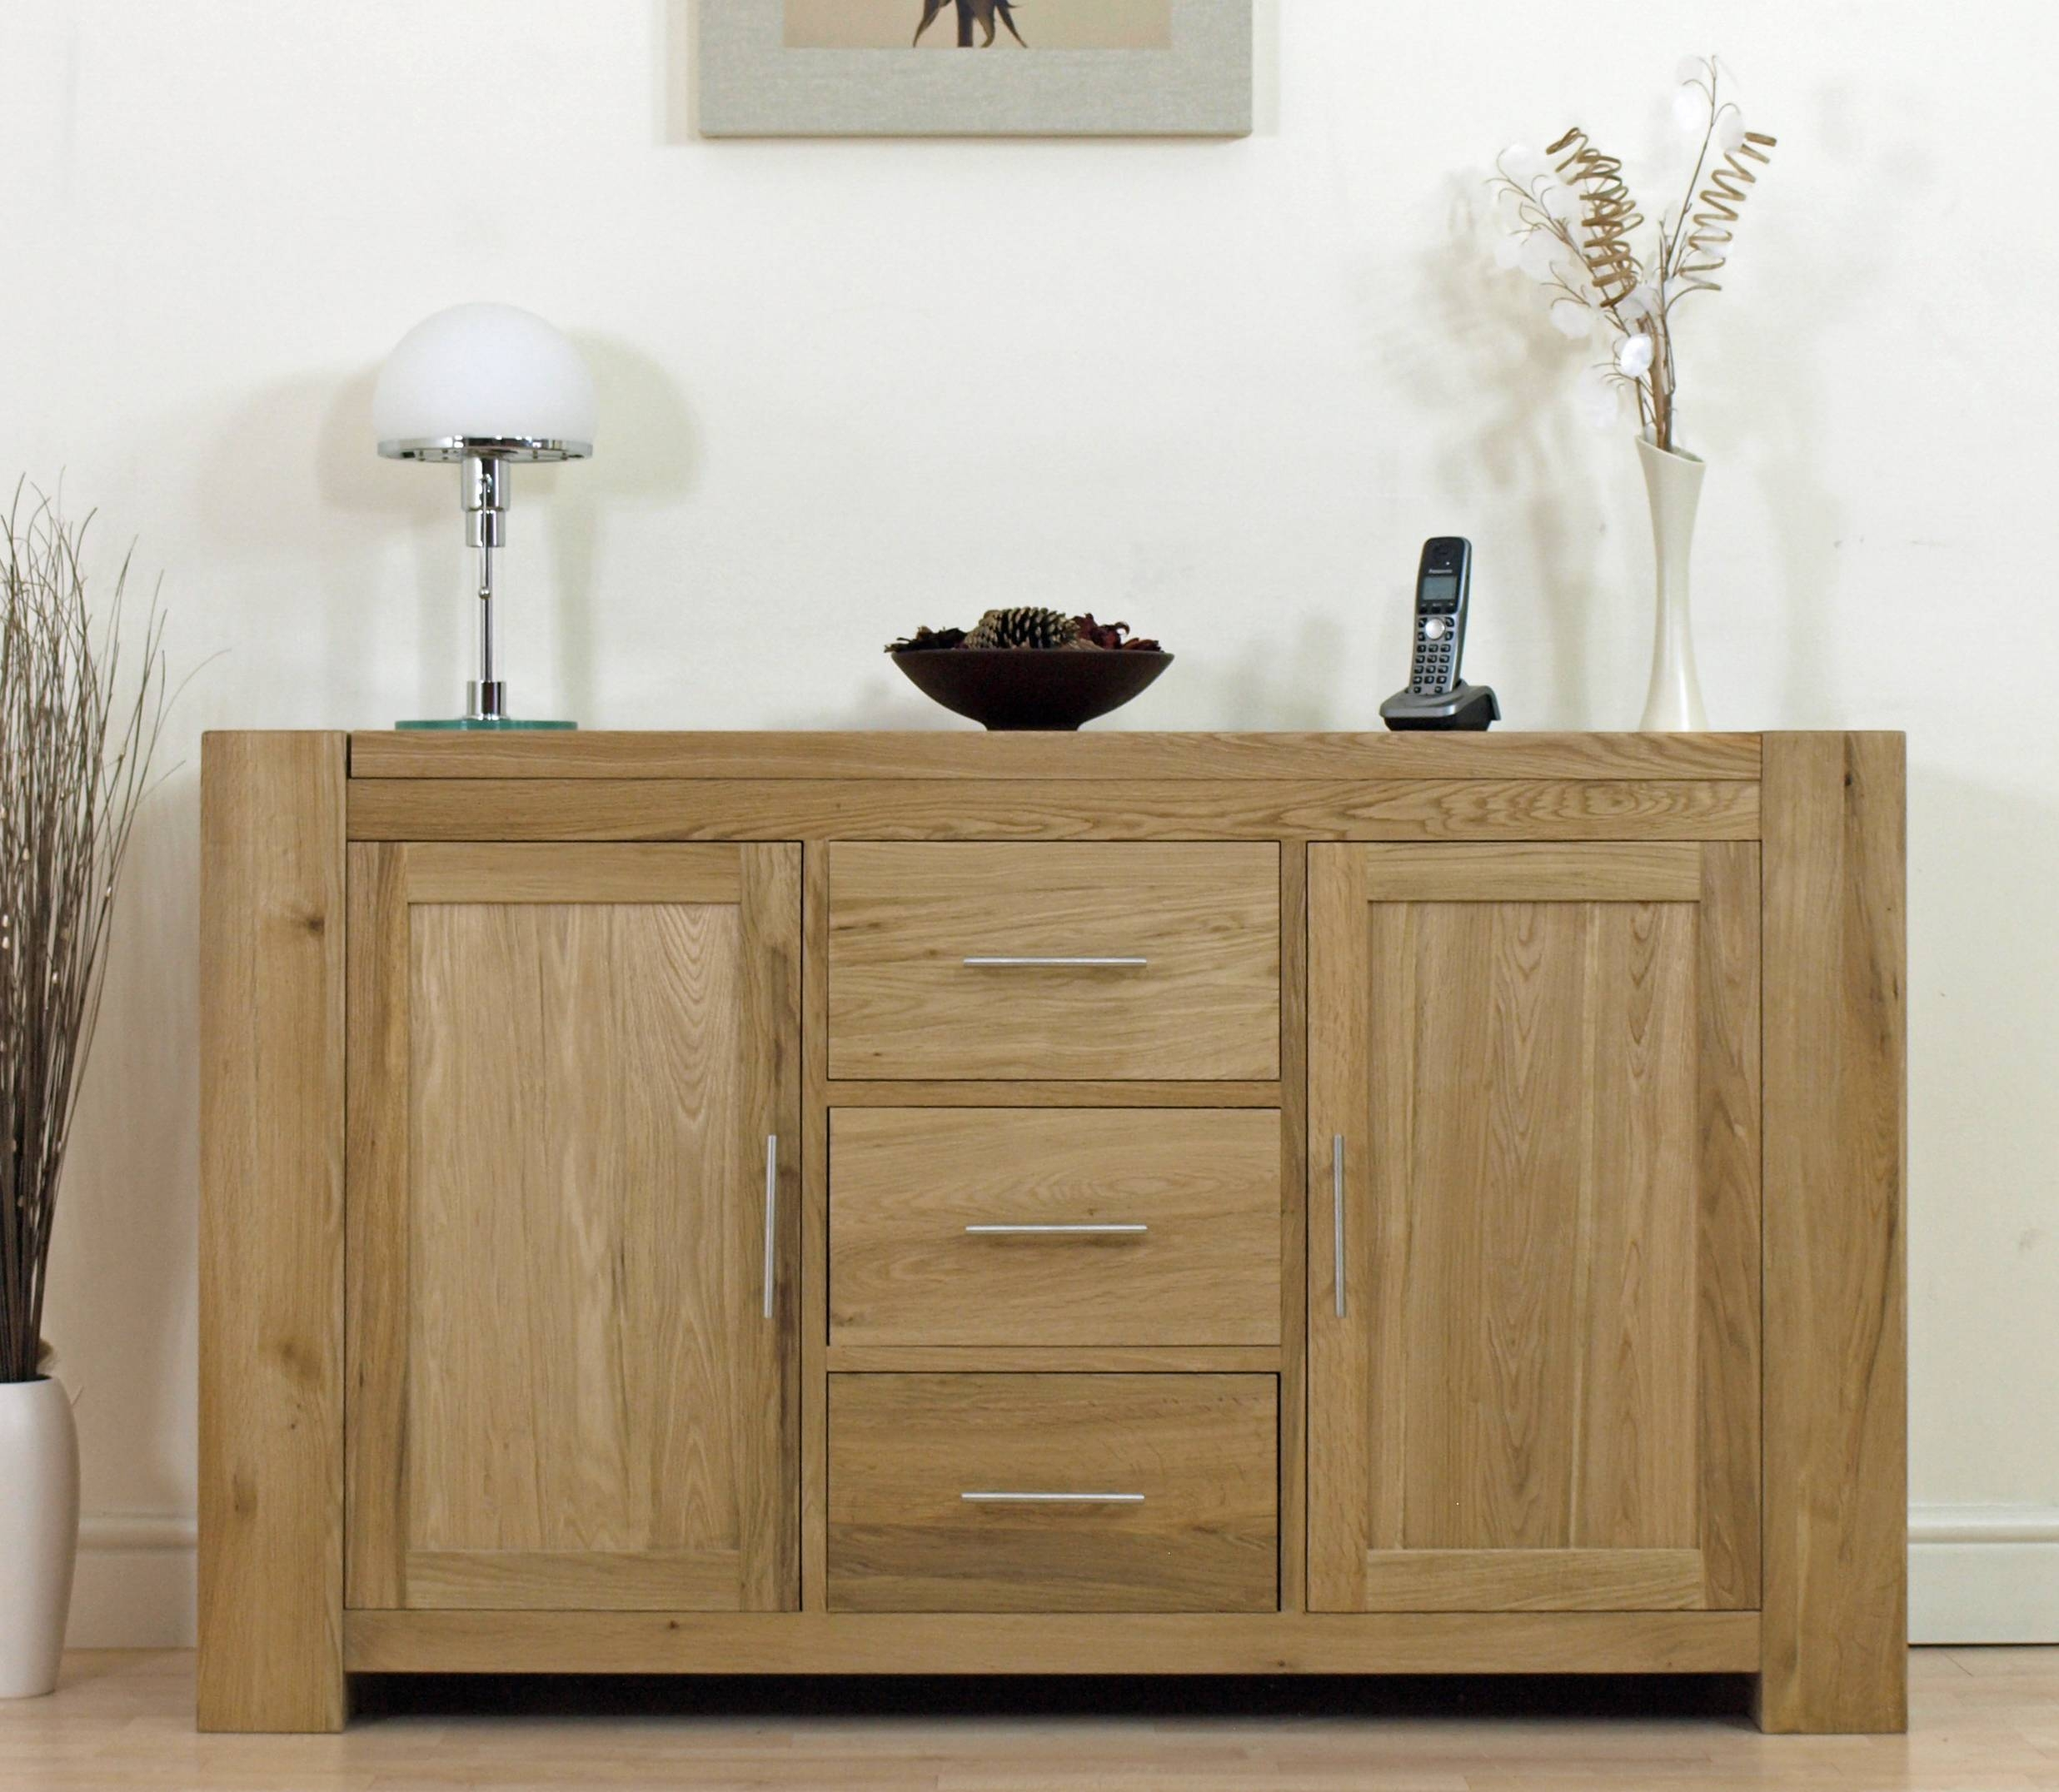 Solid Oak Sideboard Is Your First Choice Living Room Furniture - Hgnv pertaining to Contemporary Oak Sideboards (Image 30 of 30)